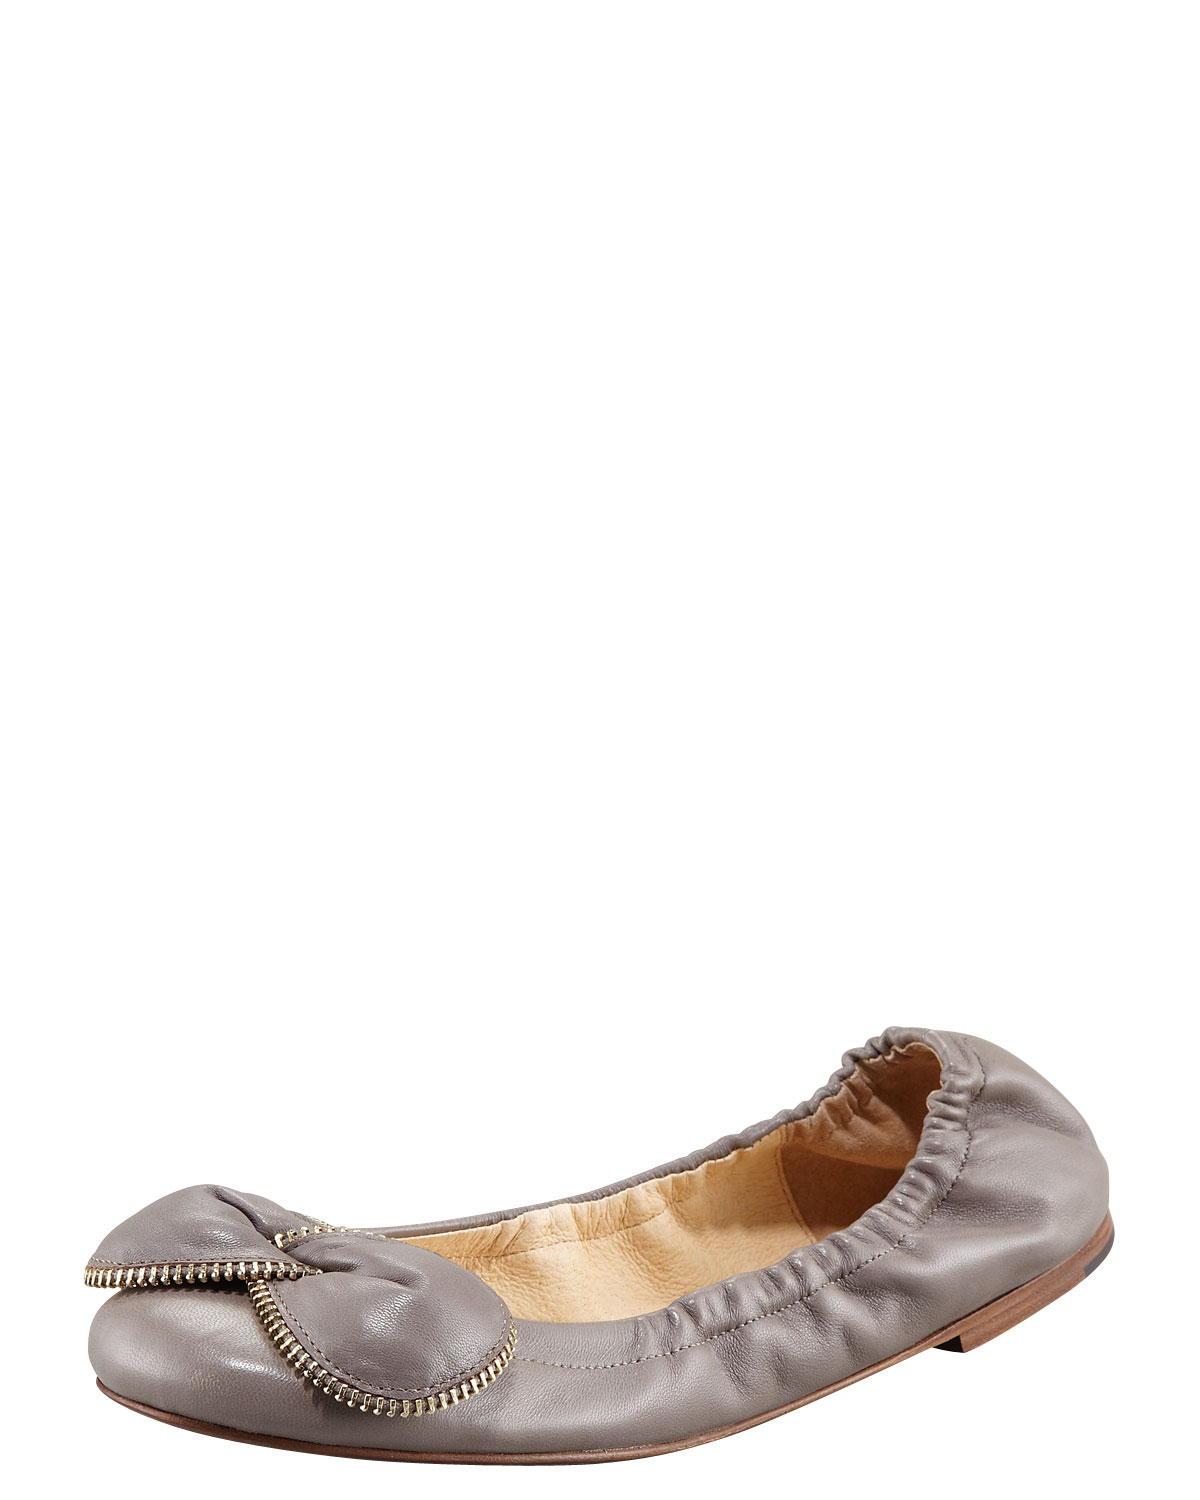 84d0da61c799 Lyst - See By Chloé Zipper Bow Ballerina Flat in Gray